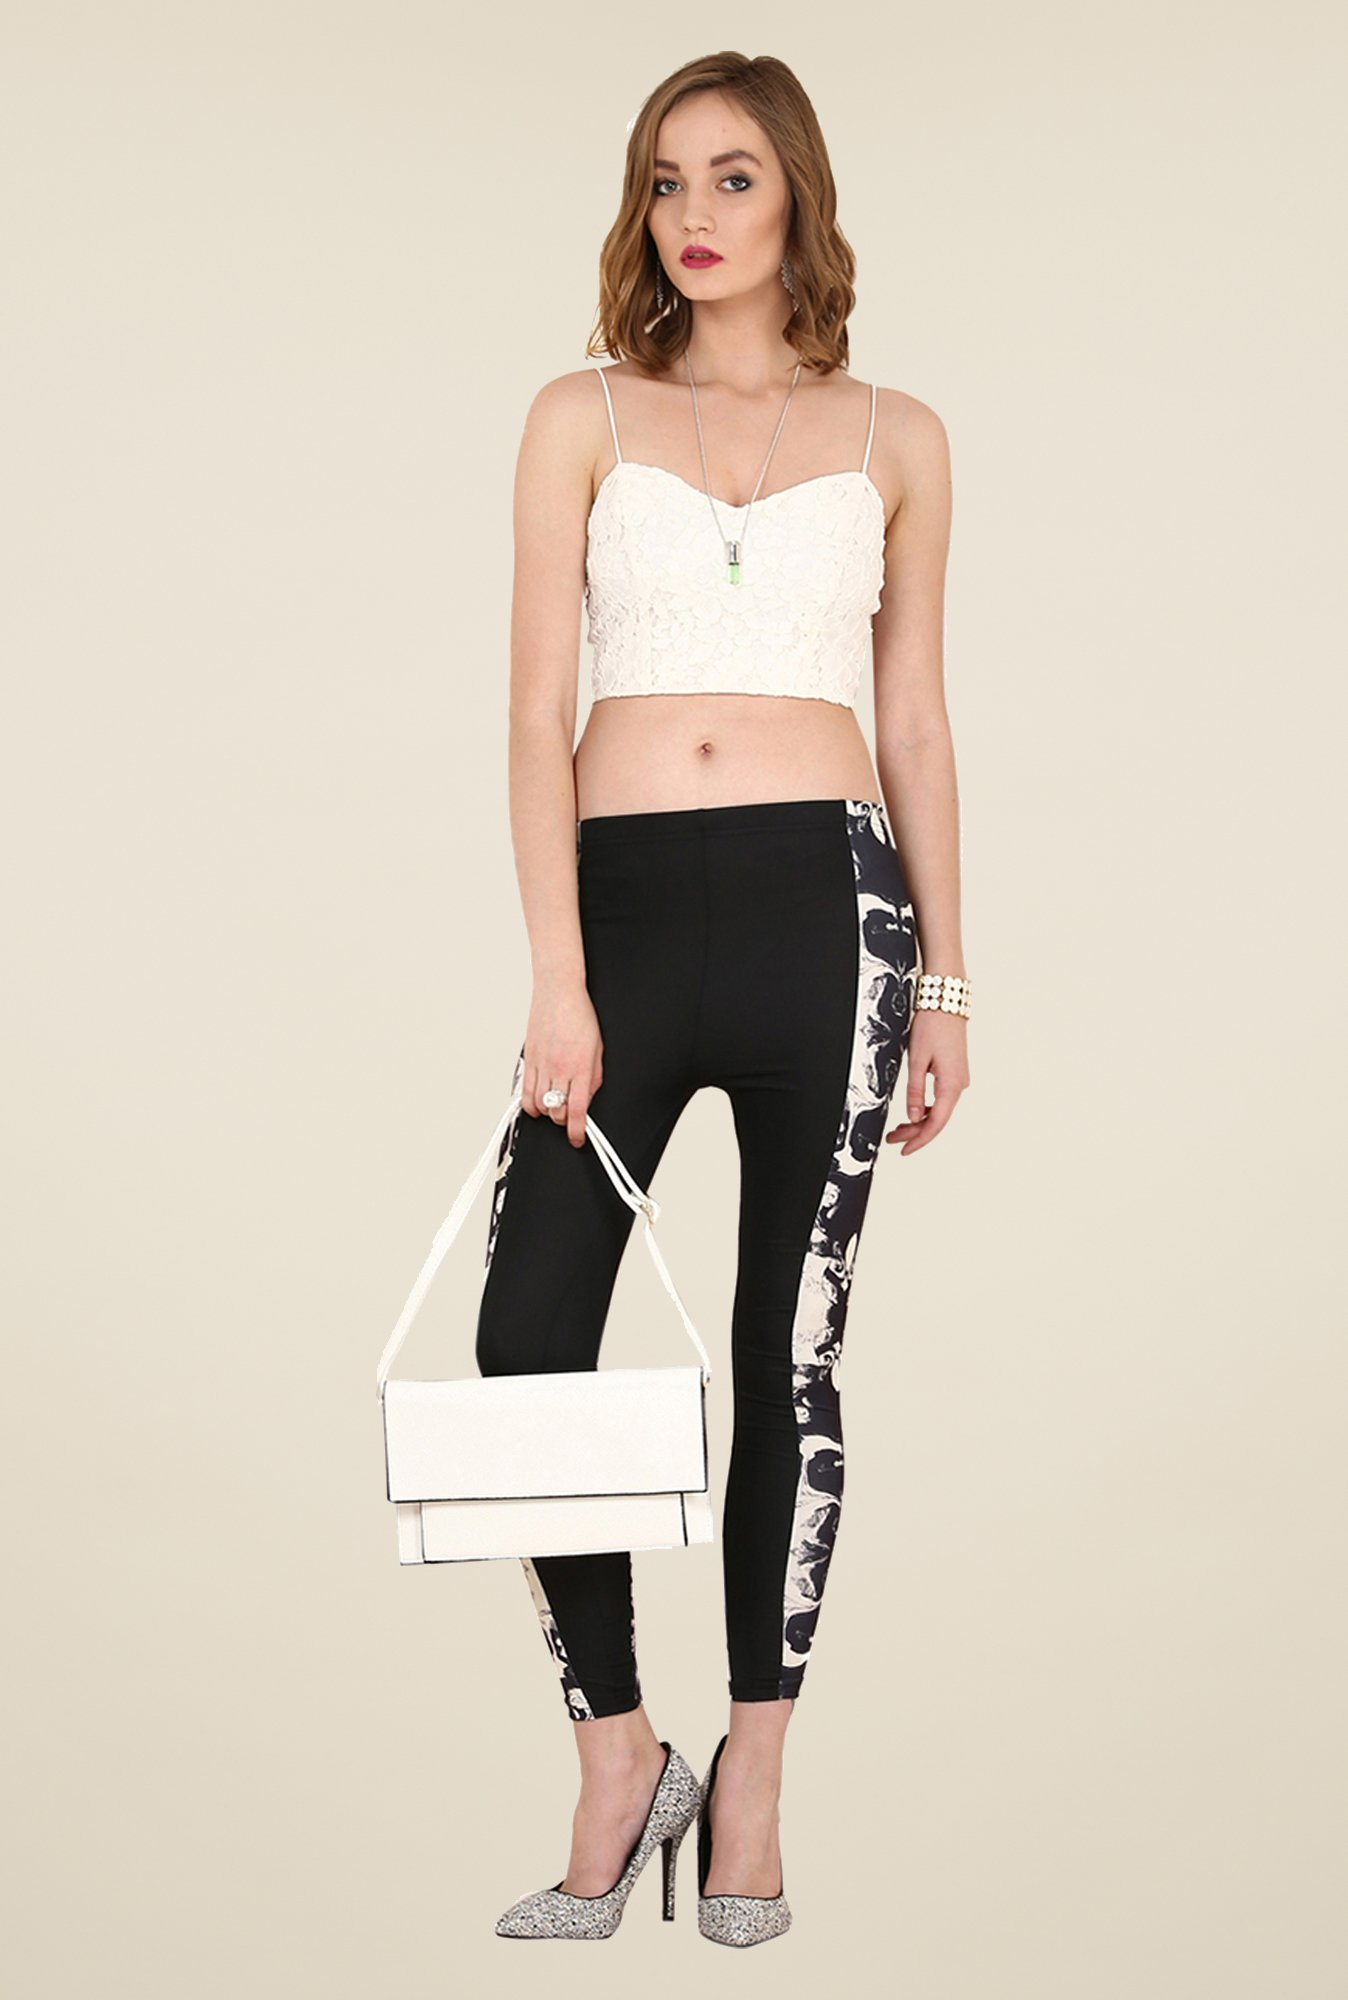 Yepme Jackui Black & White Party Leggings